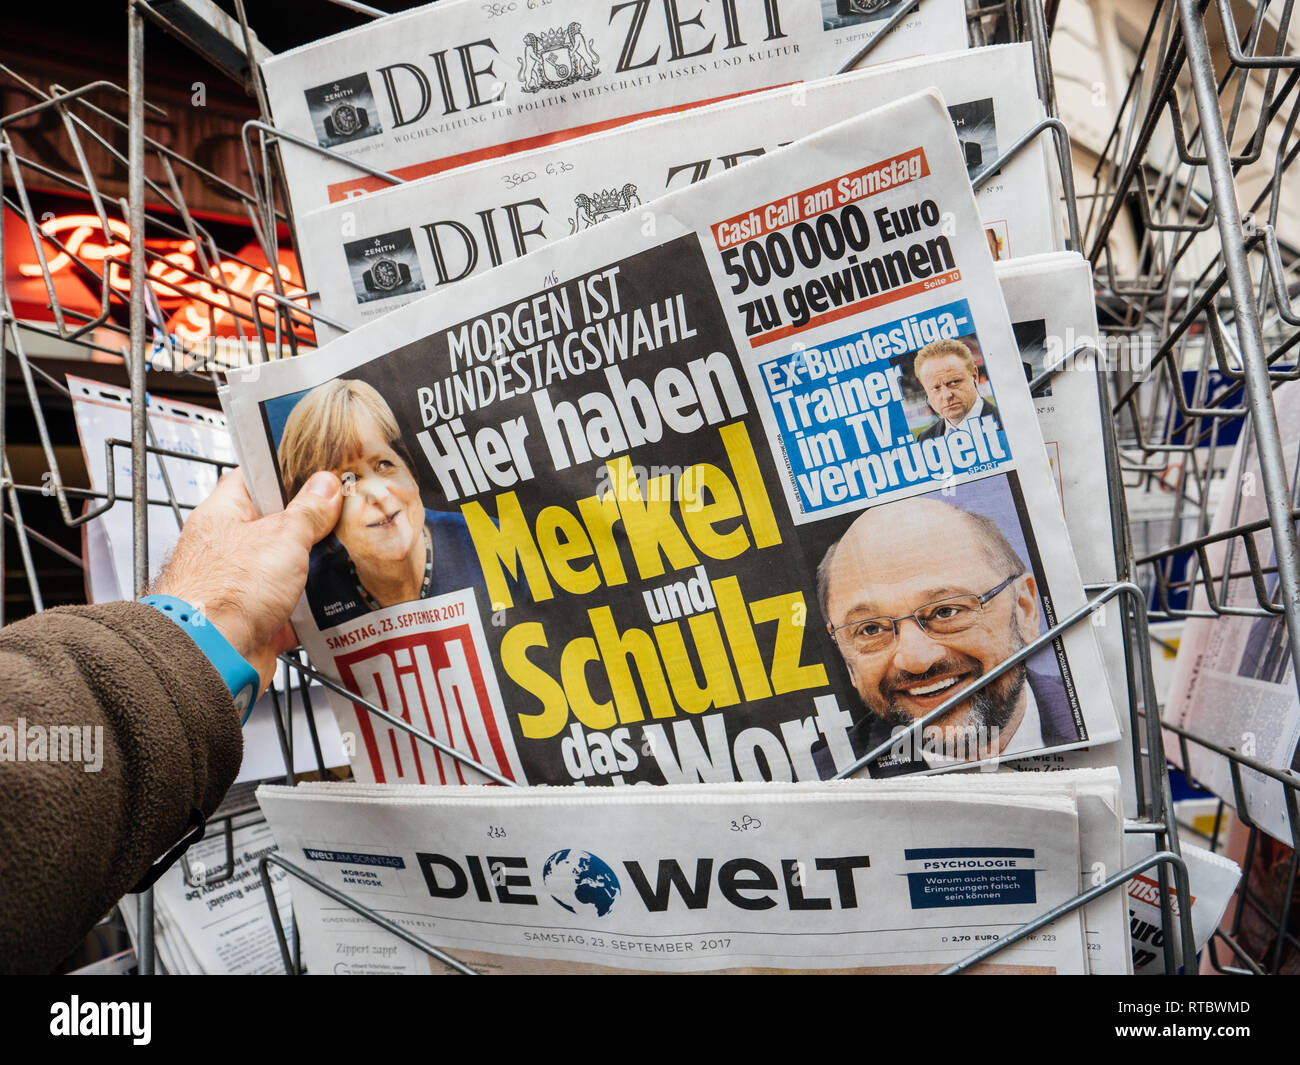 PARIS, FRANCE - SEP 23, 2017: Man buying latest newspaper Die Bild with with portrait of Angela Merkel And Martin Schulz before the election in Germany for the Chancellor of Germany, the head of the federal government, currently Angela Merkel - Stock Image